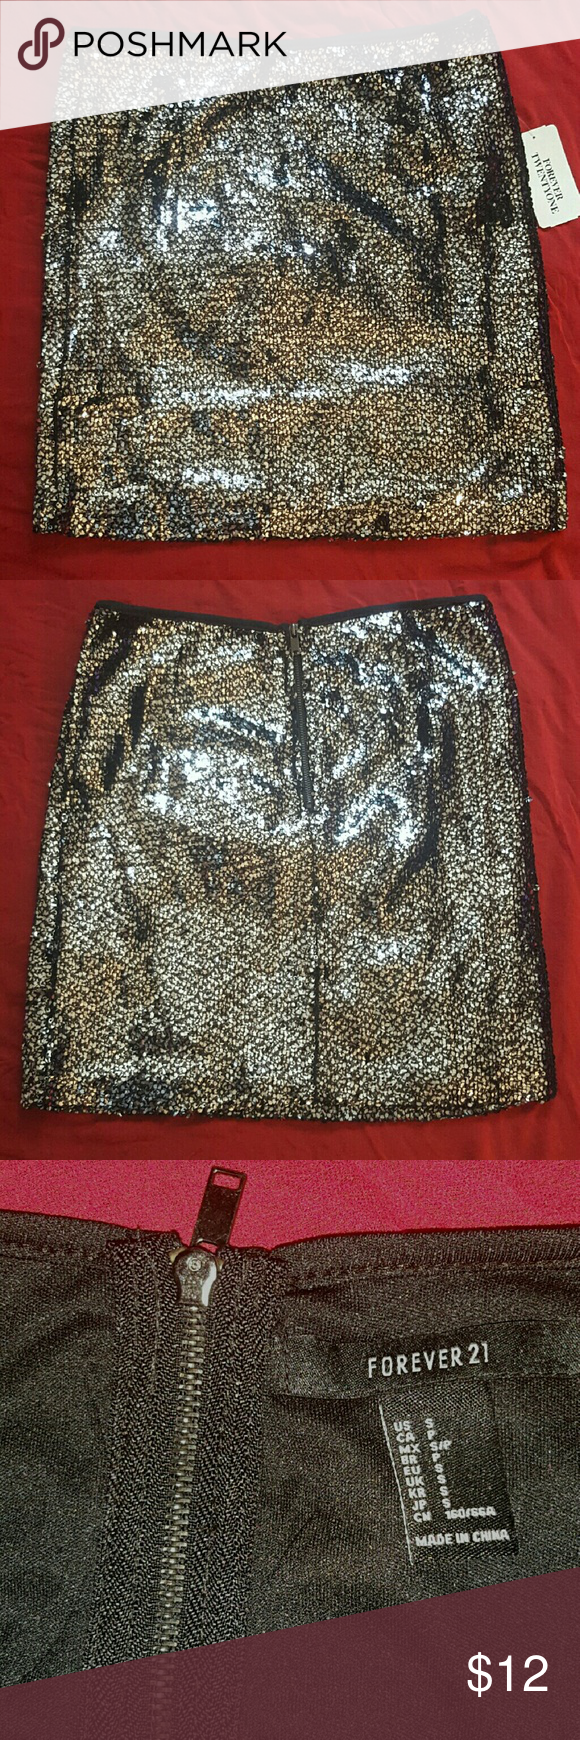 NWT Forever 21 Sequin Mini Skirt Black With Gunmetal Gray Sequins All